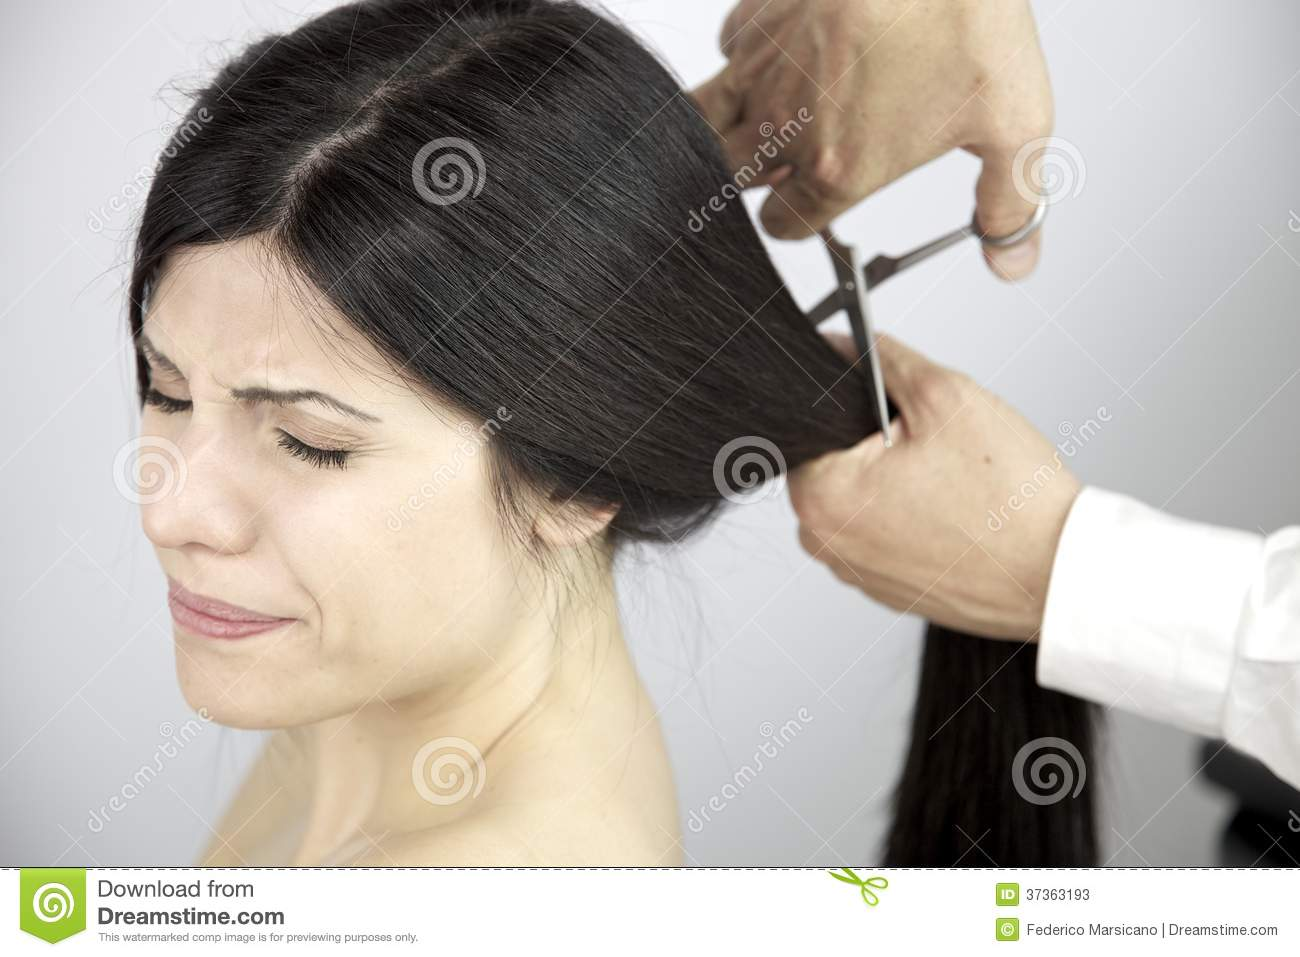 Scary Moment Long Hair Being Cut By Hairdresser Stock